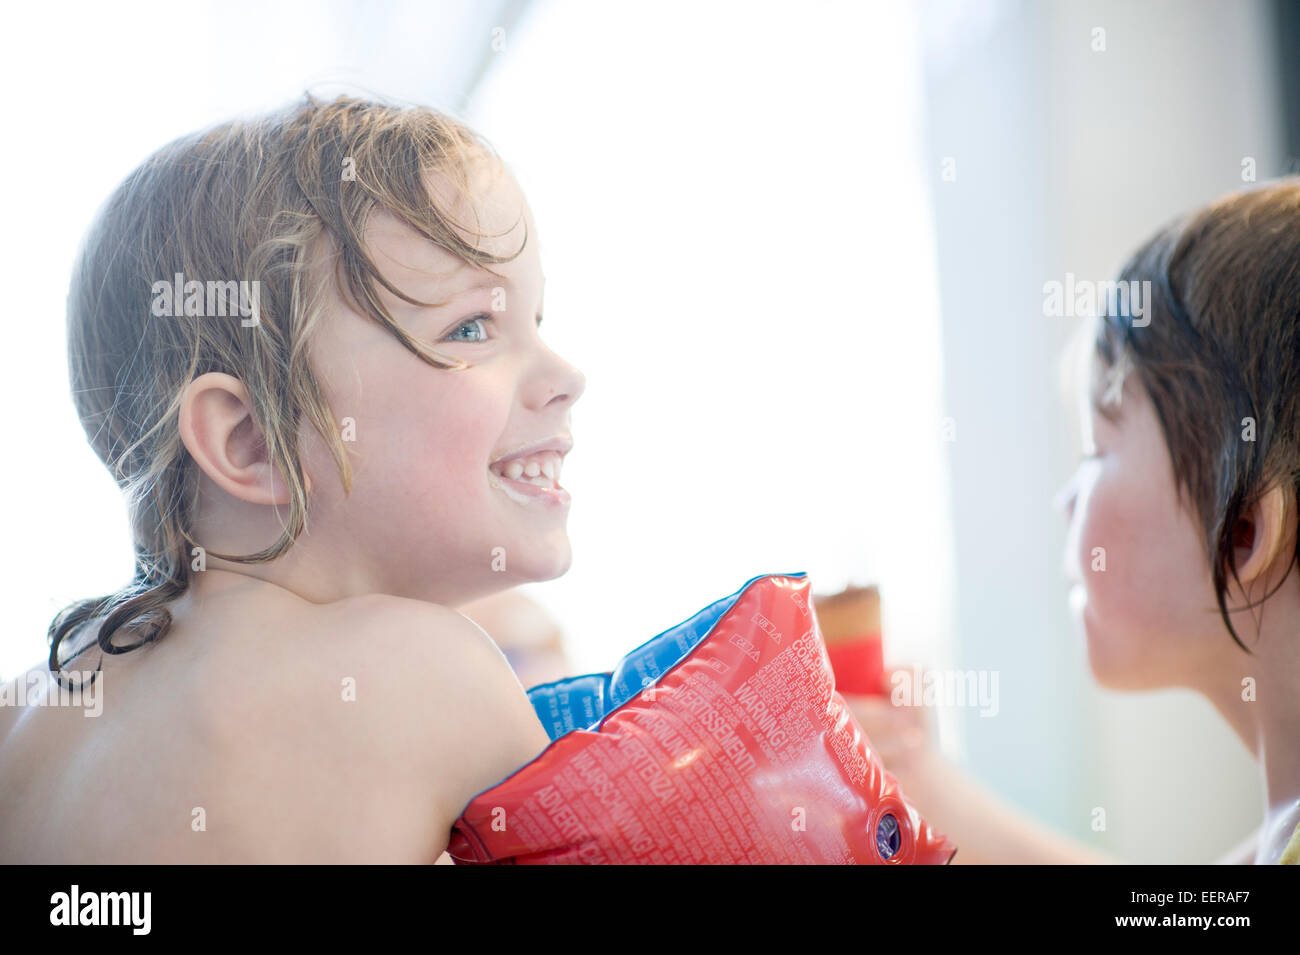 in the bathhouse, bathing, adventure bath - Stock Image